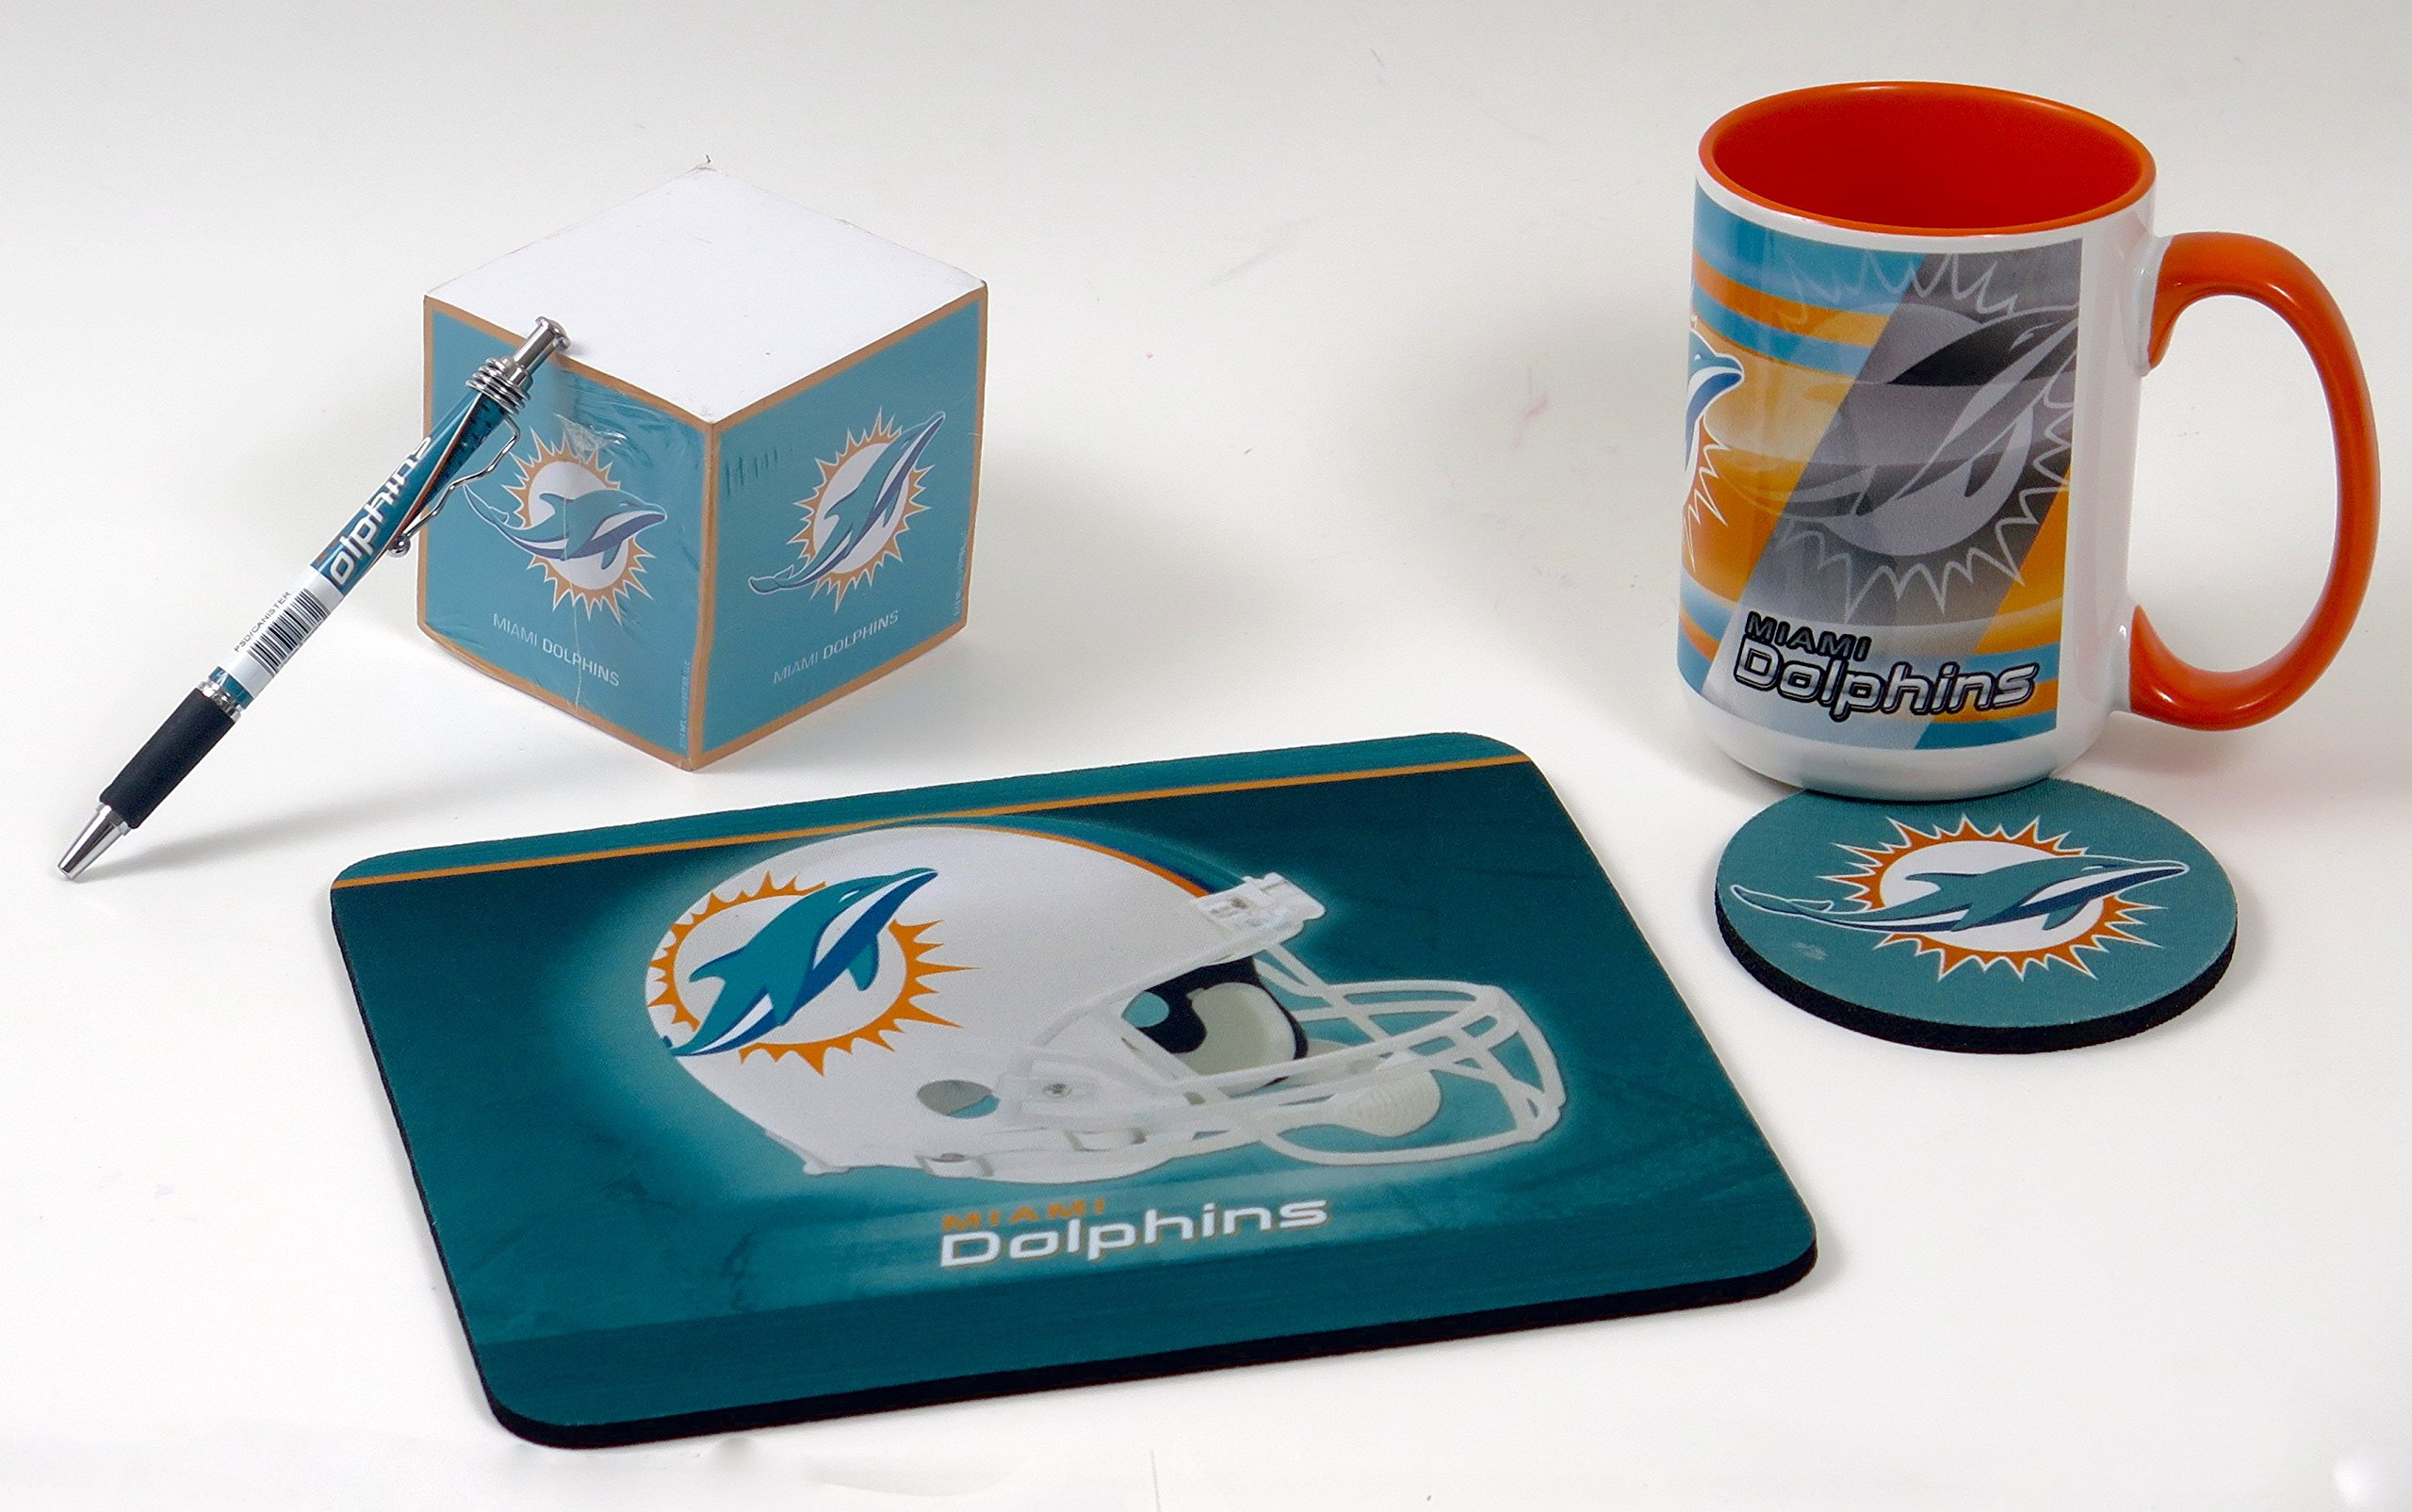 Miami Dolphins Work Station Computer Set. Includes Large Coffee Mug, Neoprene Mouse pad and Coaster, Retractable Pen and a 1000 Sheet Notepad Cube. 5 Peace Set by T (Image #2)